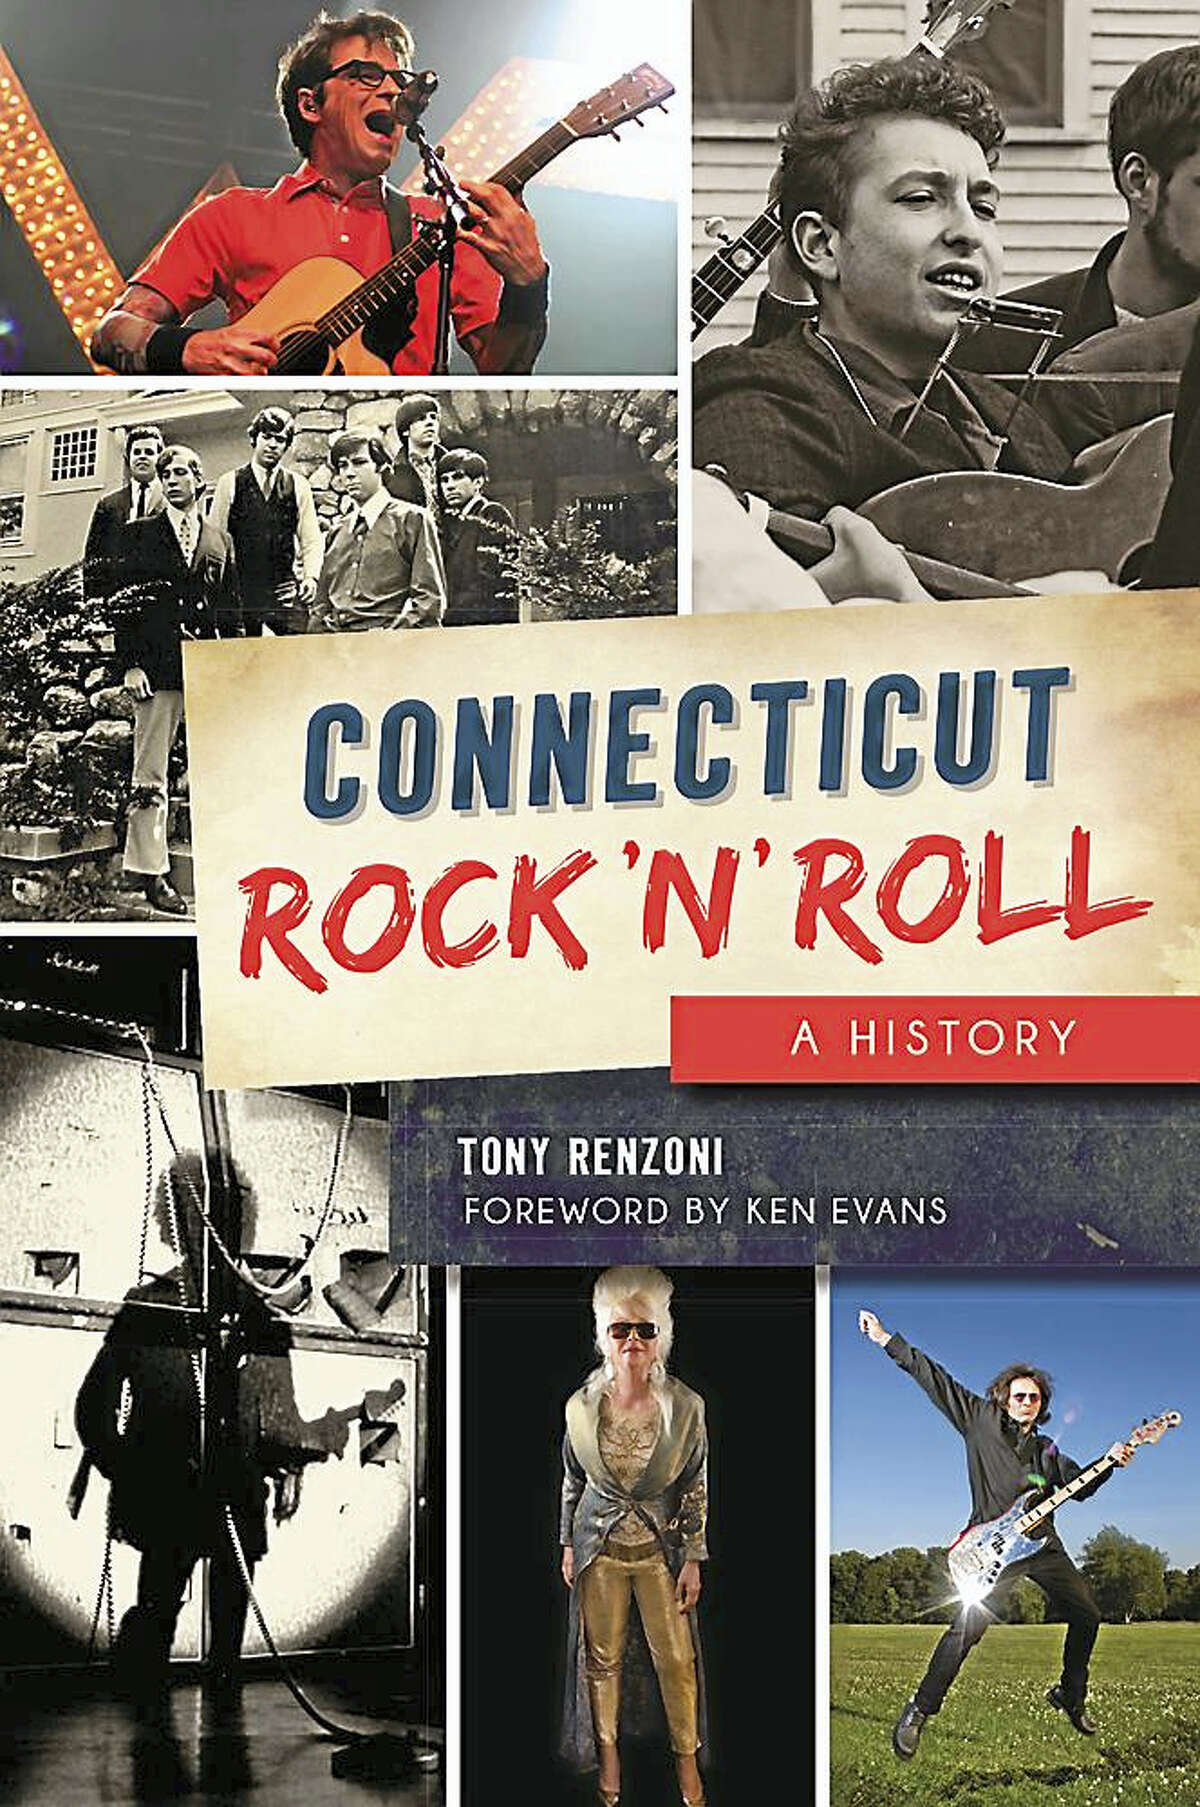 The jacket cover for Connecticut Rock 'N' Roll